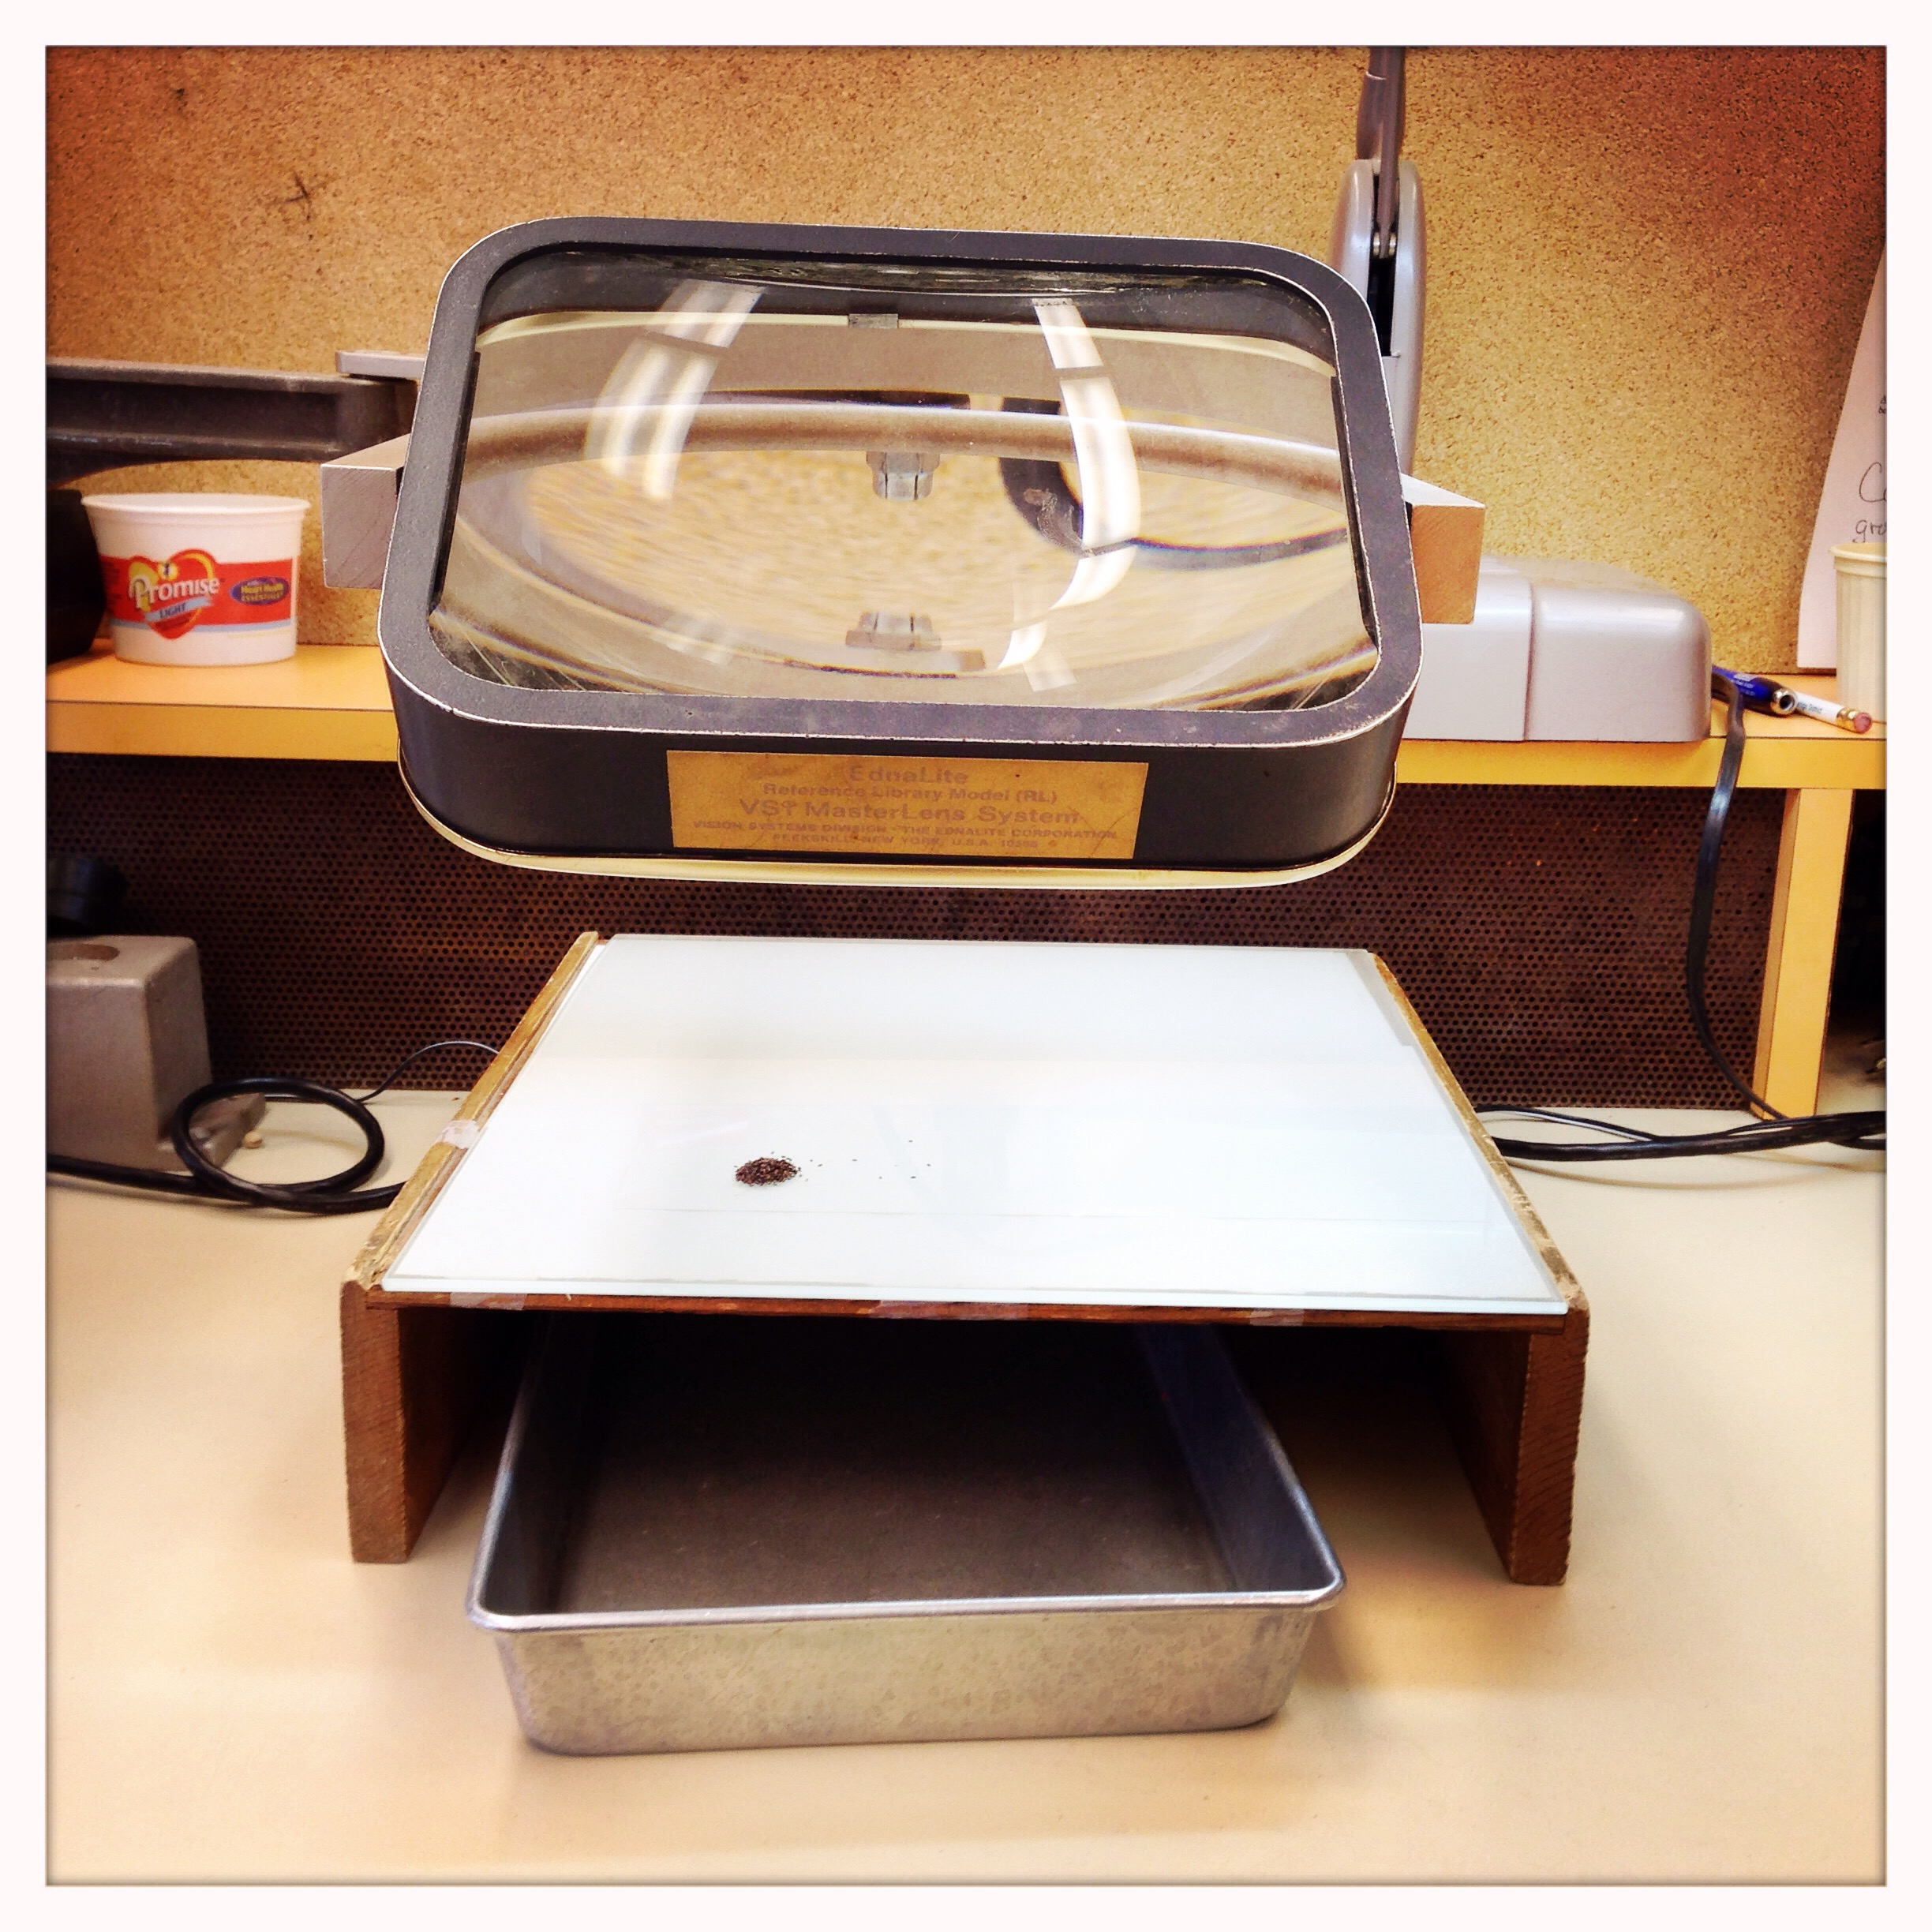 Magnifying glass station used for hand-sorting and seed counting.